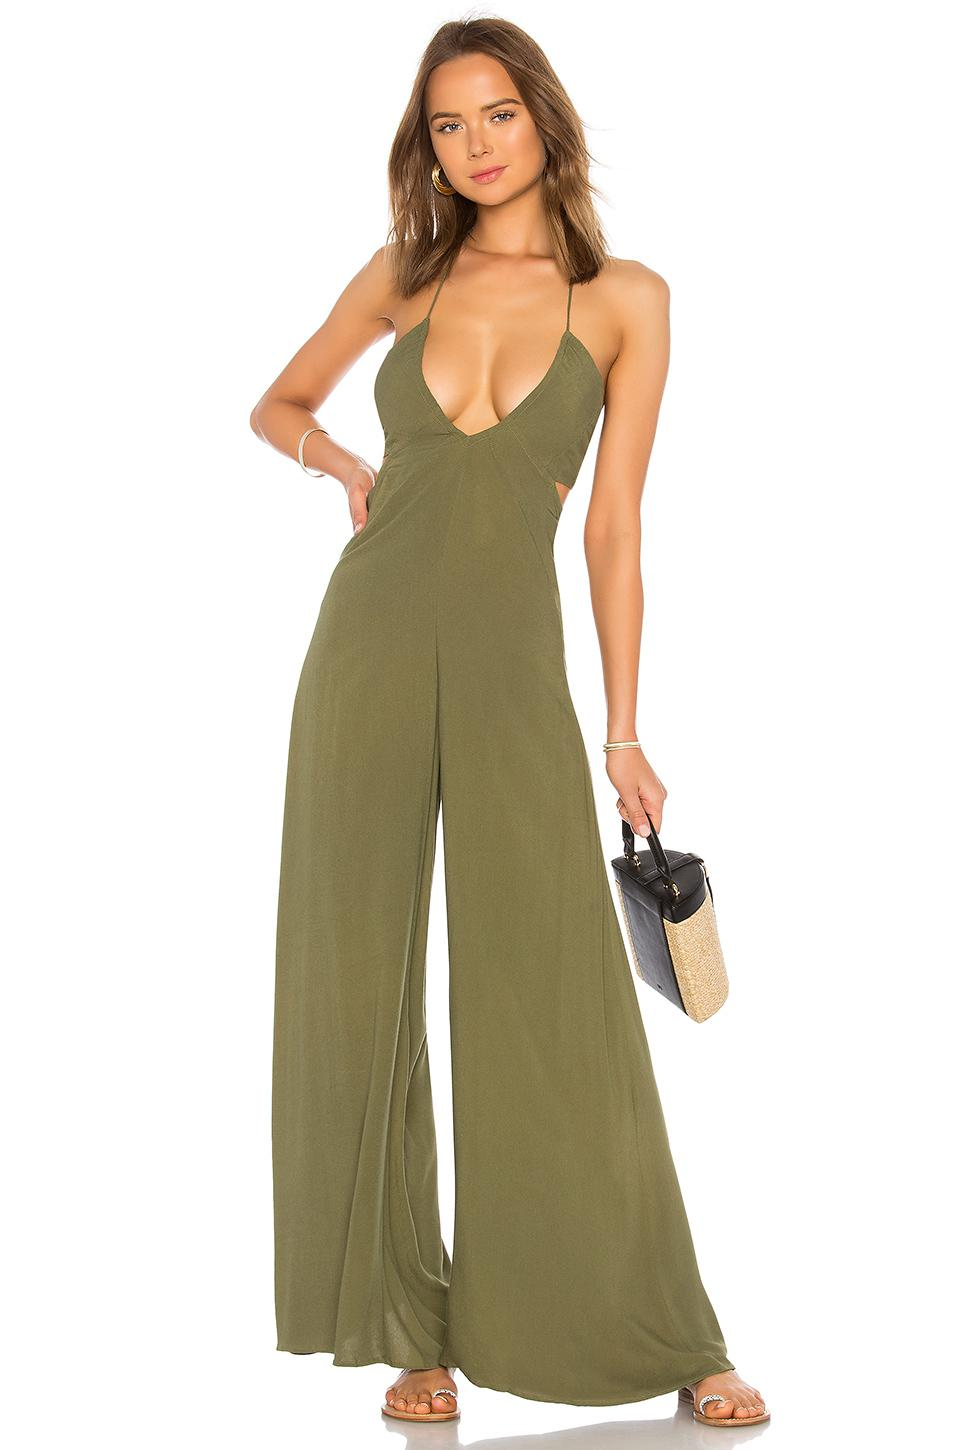 a4a27ccd6aeb Lyst - Indah Jagger Jumpsuit in Green